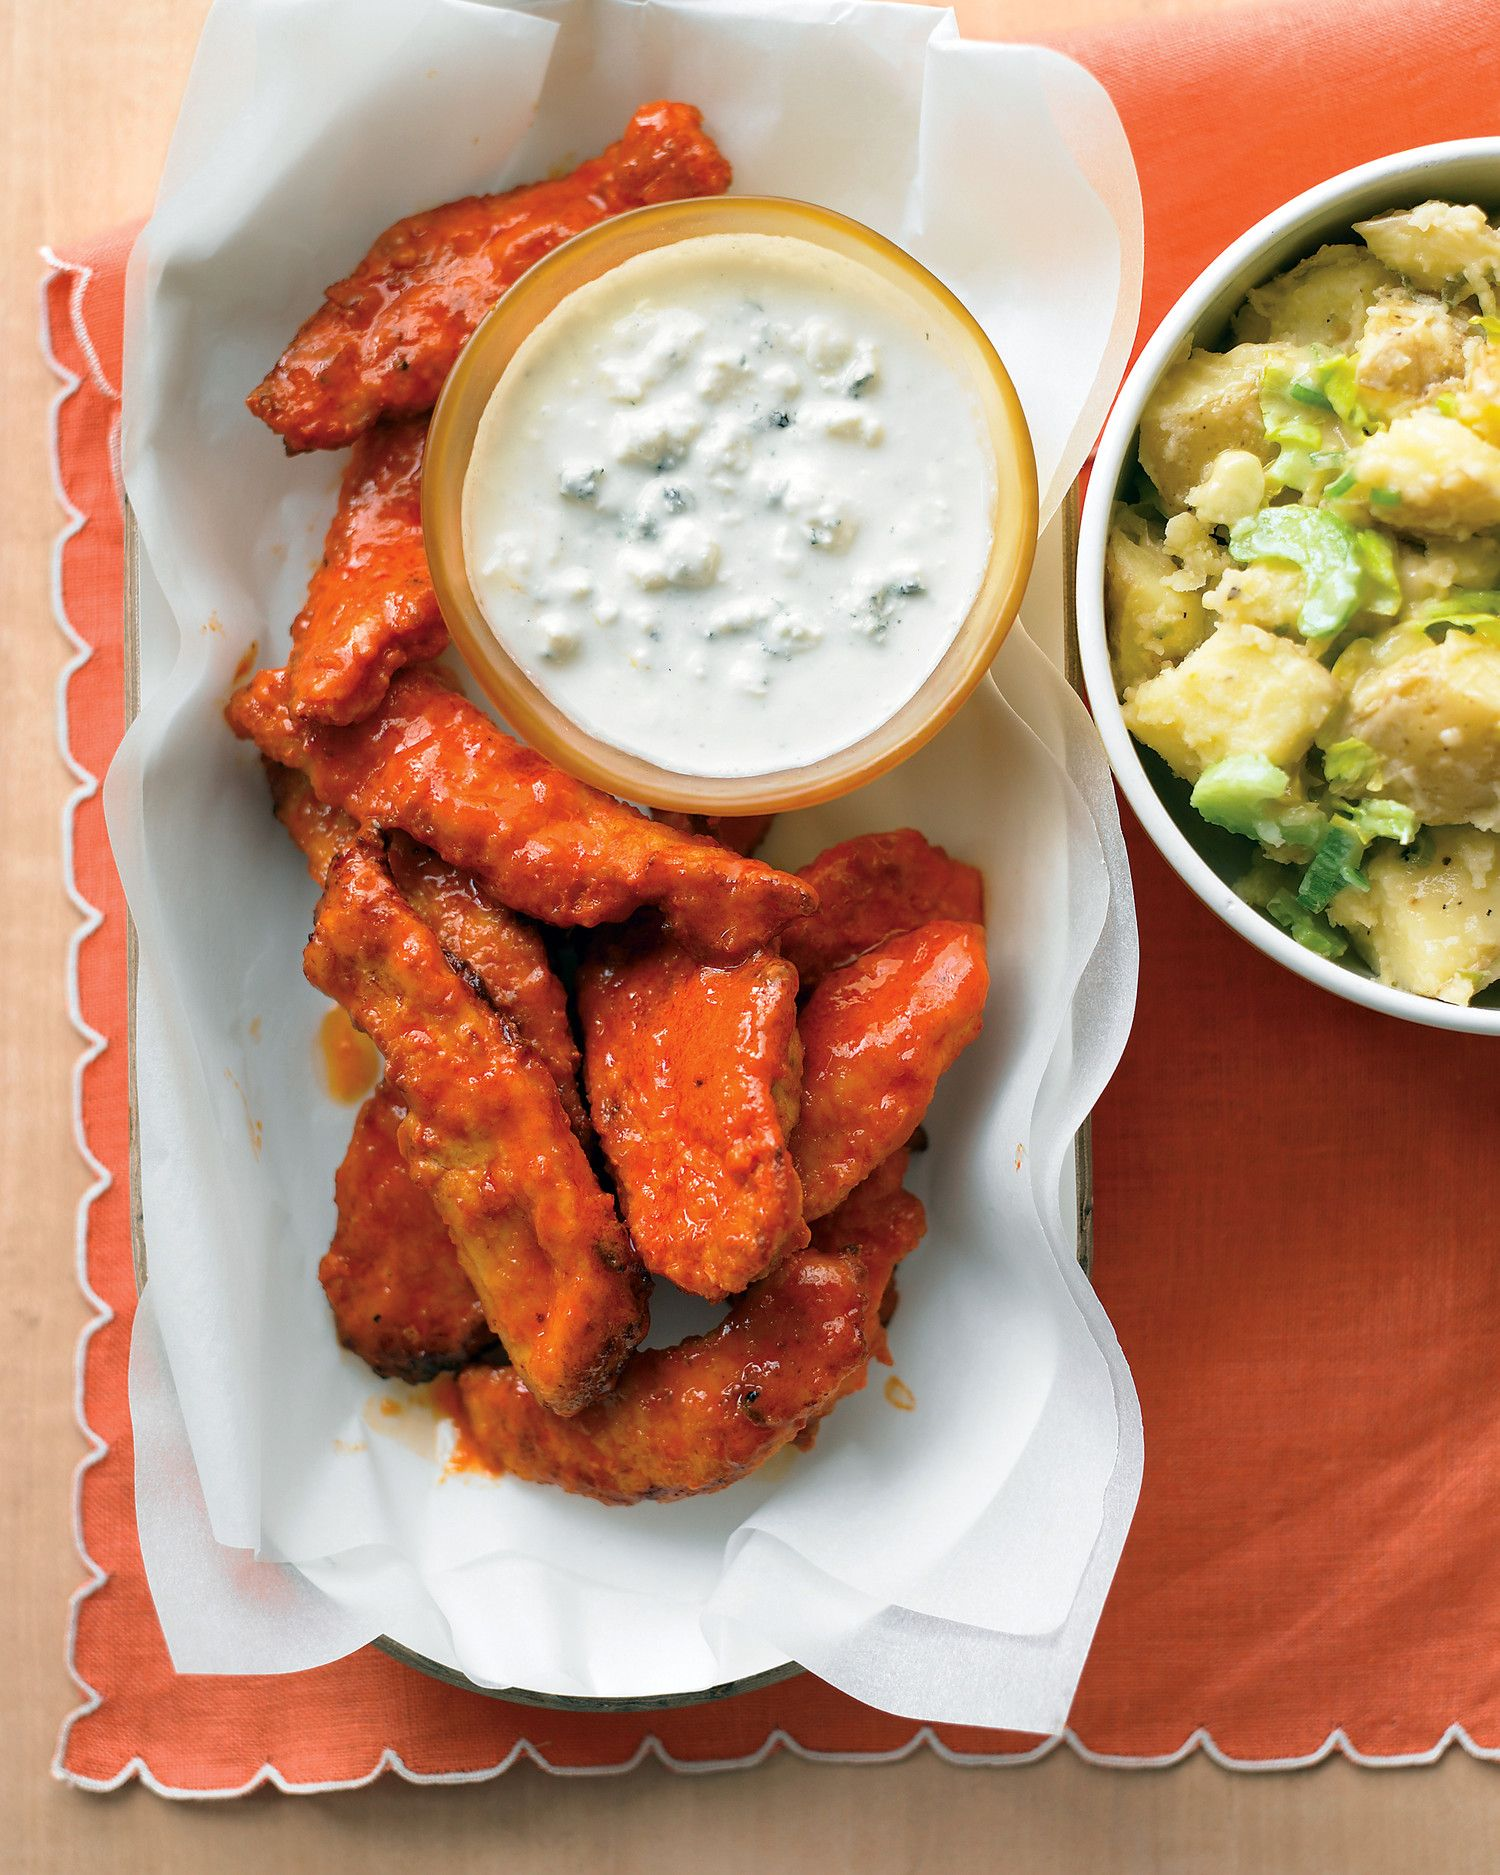 Chicken tenders are even easier to eat than wings -- no pesky bones! Here, they're bathed in buttermilk, floured, fried, and tossed in plenty of hot sauce and butter. Serve with blue cheese dip and our Potato Salad with Celery and Scallions.